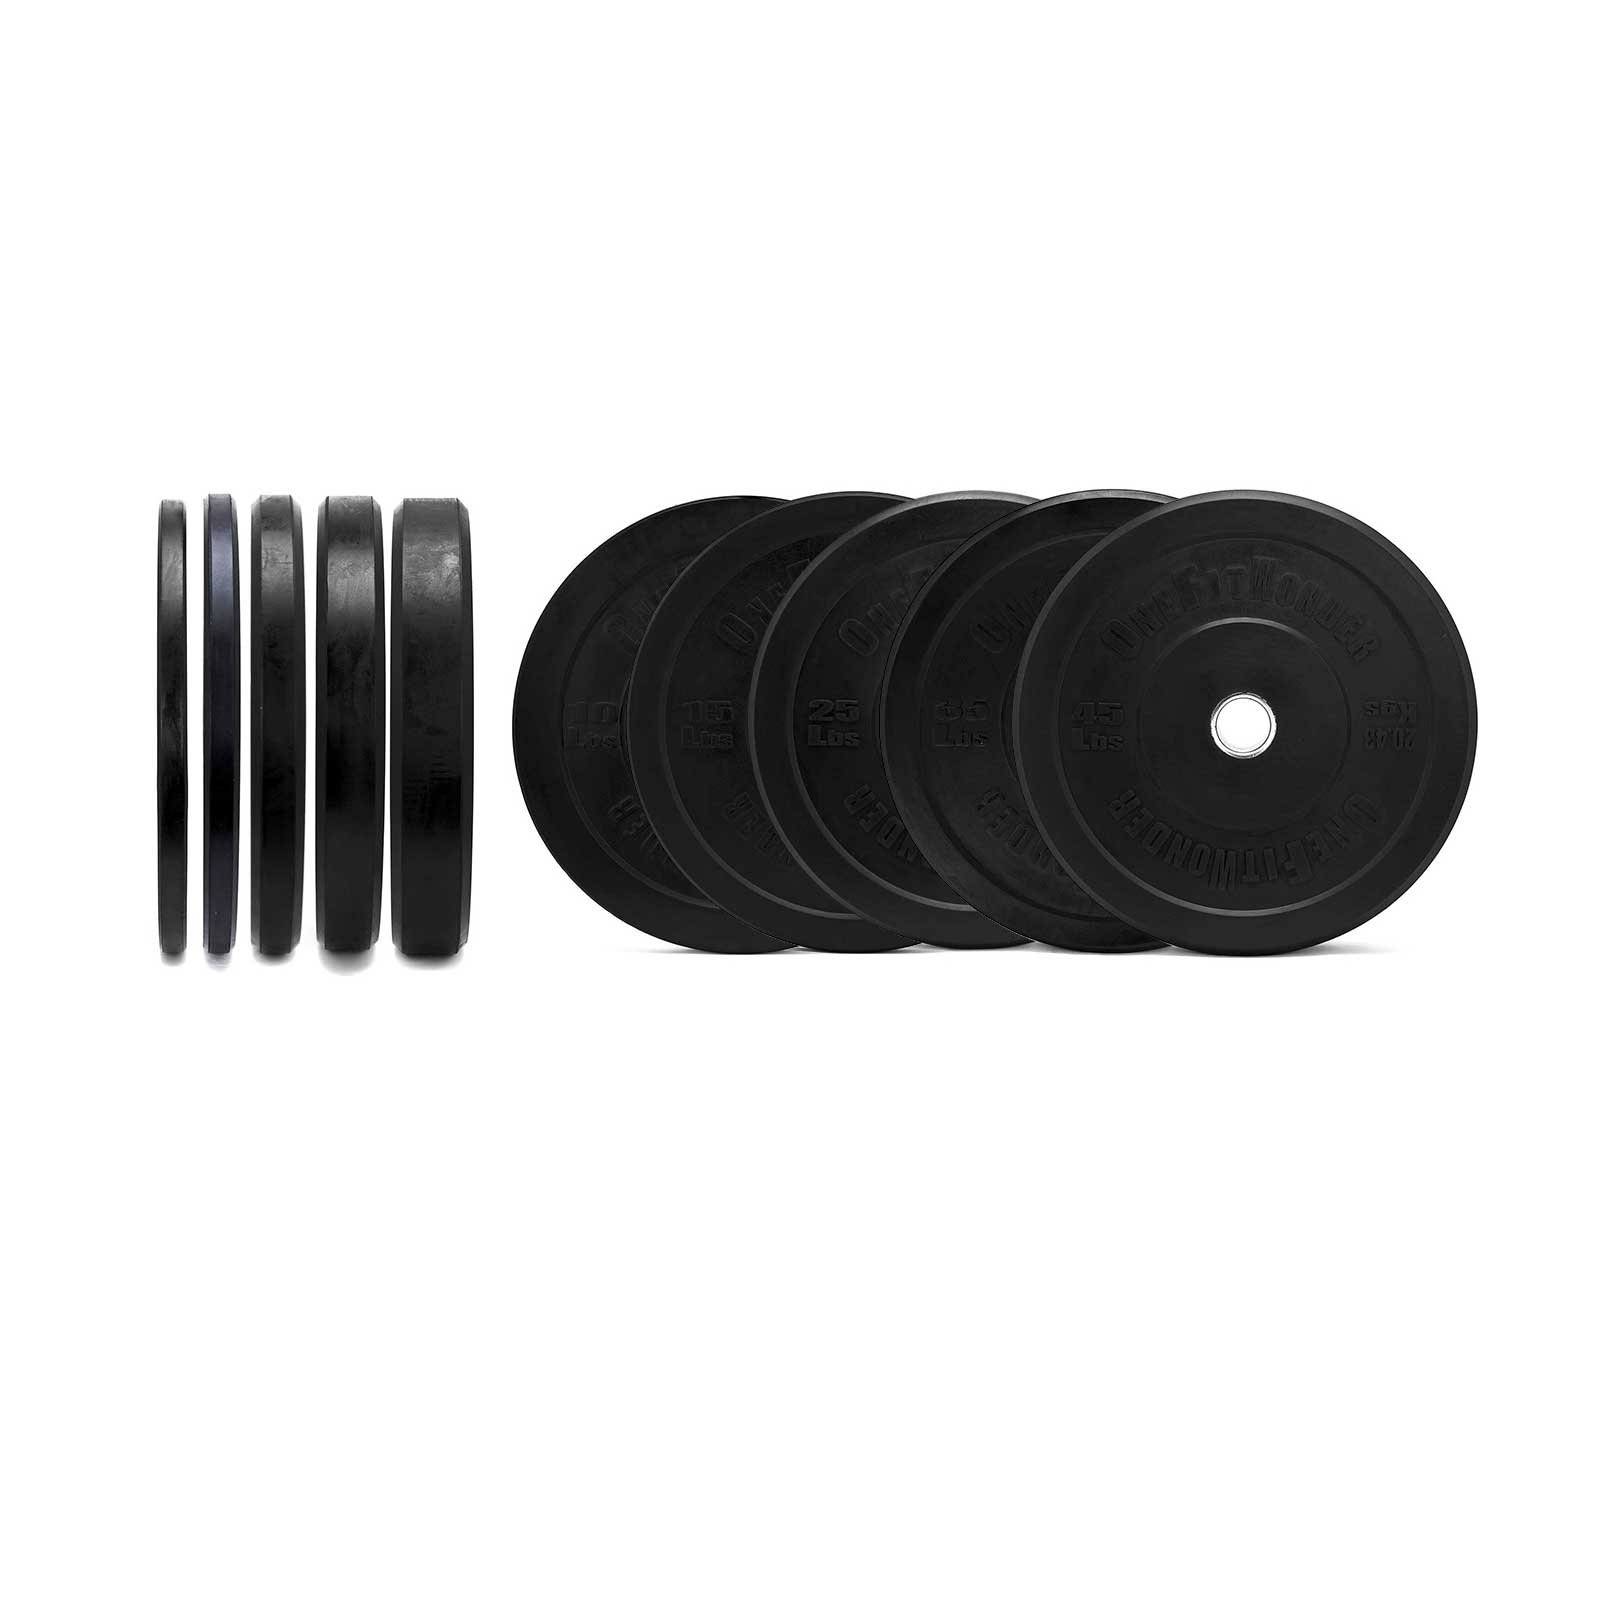 260 Lbs New Bumper Plates Set Olympic Plates Solid Plates Weight Plates for Crossfit Training Weight Lifting Gym By Onefitwonder Pair of 10 lbs,15 lbs,25 lbs,35 lbs,45 lbs by OneFitWonder